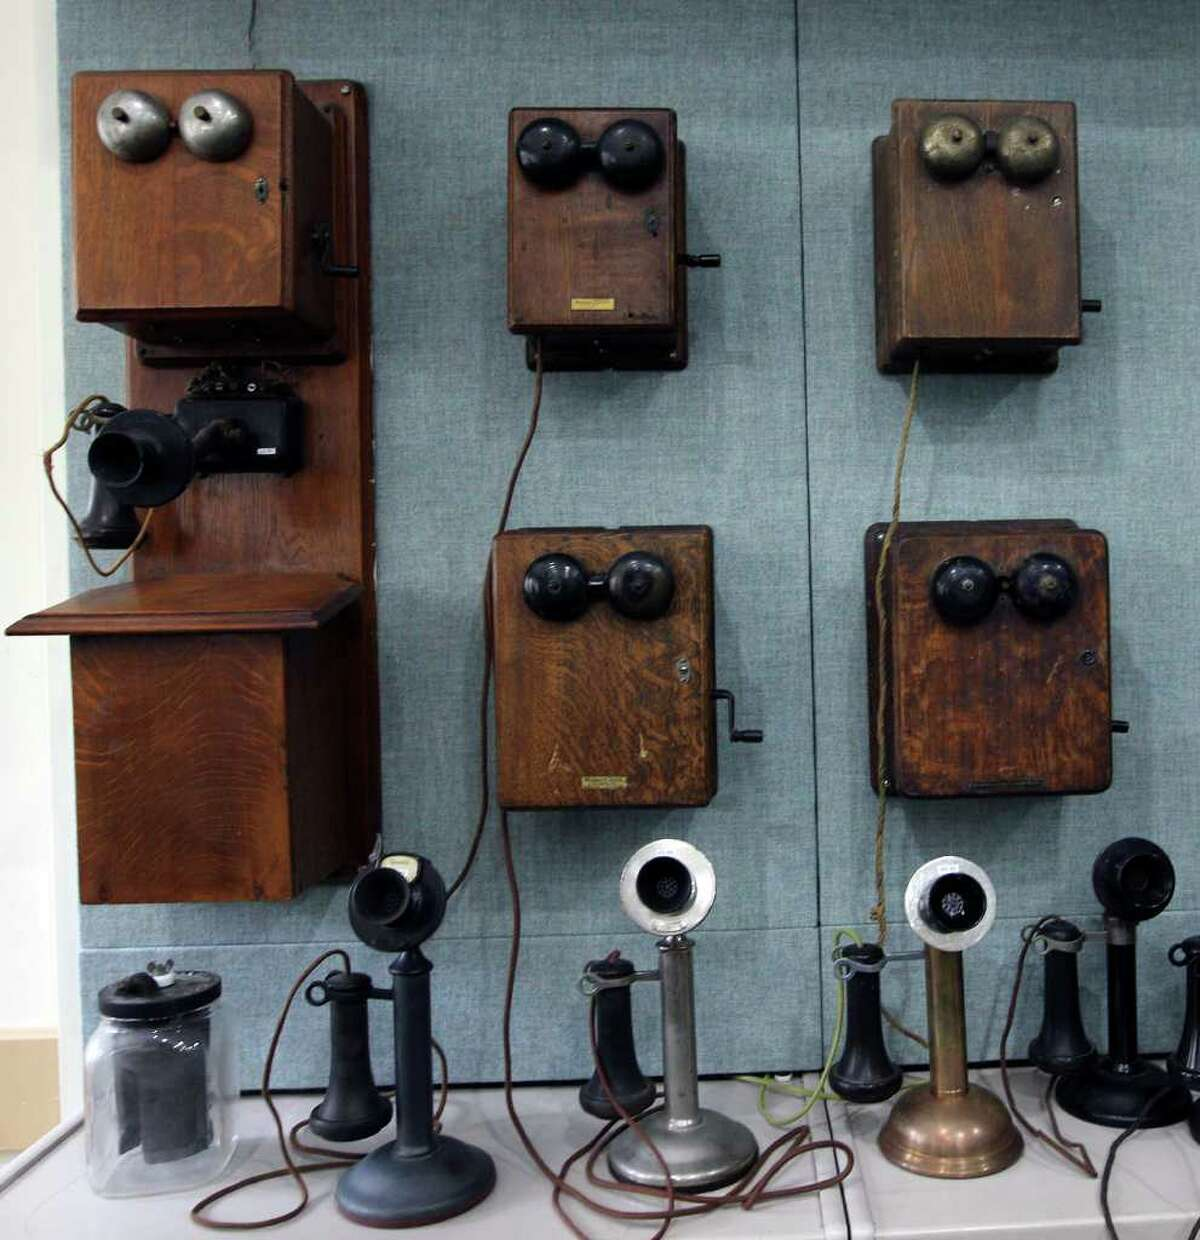 An 1890s magneto Kellogg wall phone (far left) is the oldest phone in the collection.